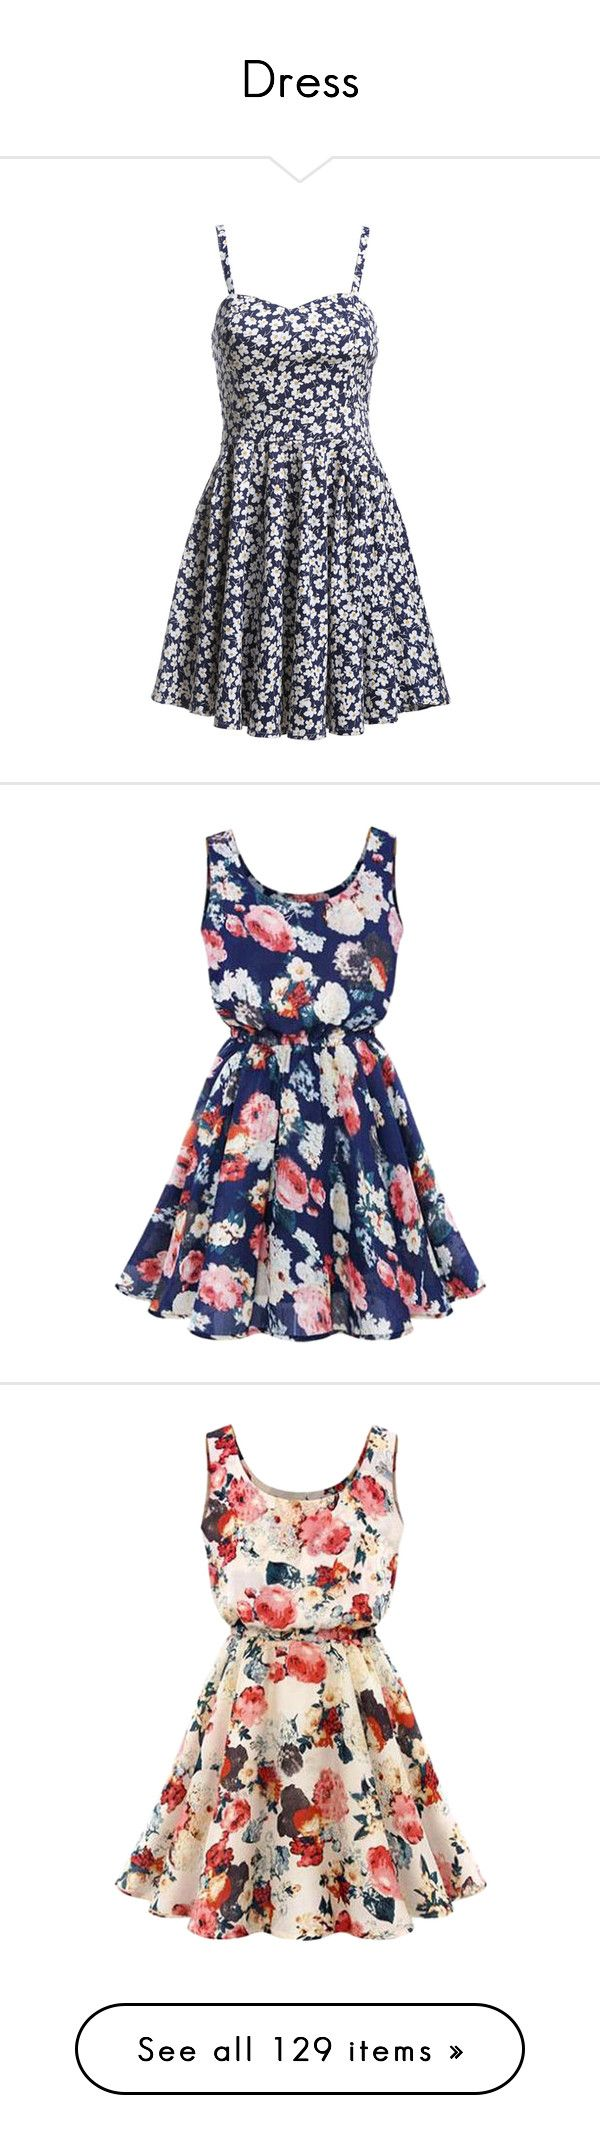 """Dress"" by exoo ❤ liked on Polyvore featuring dresses, vestidos, blue, pleated dress, print shift dress, short blue dresses, floral dress, sleeveless shift dress, robe and short dresses"